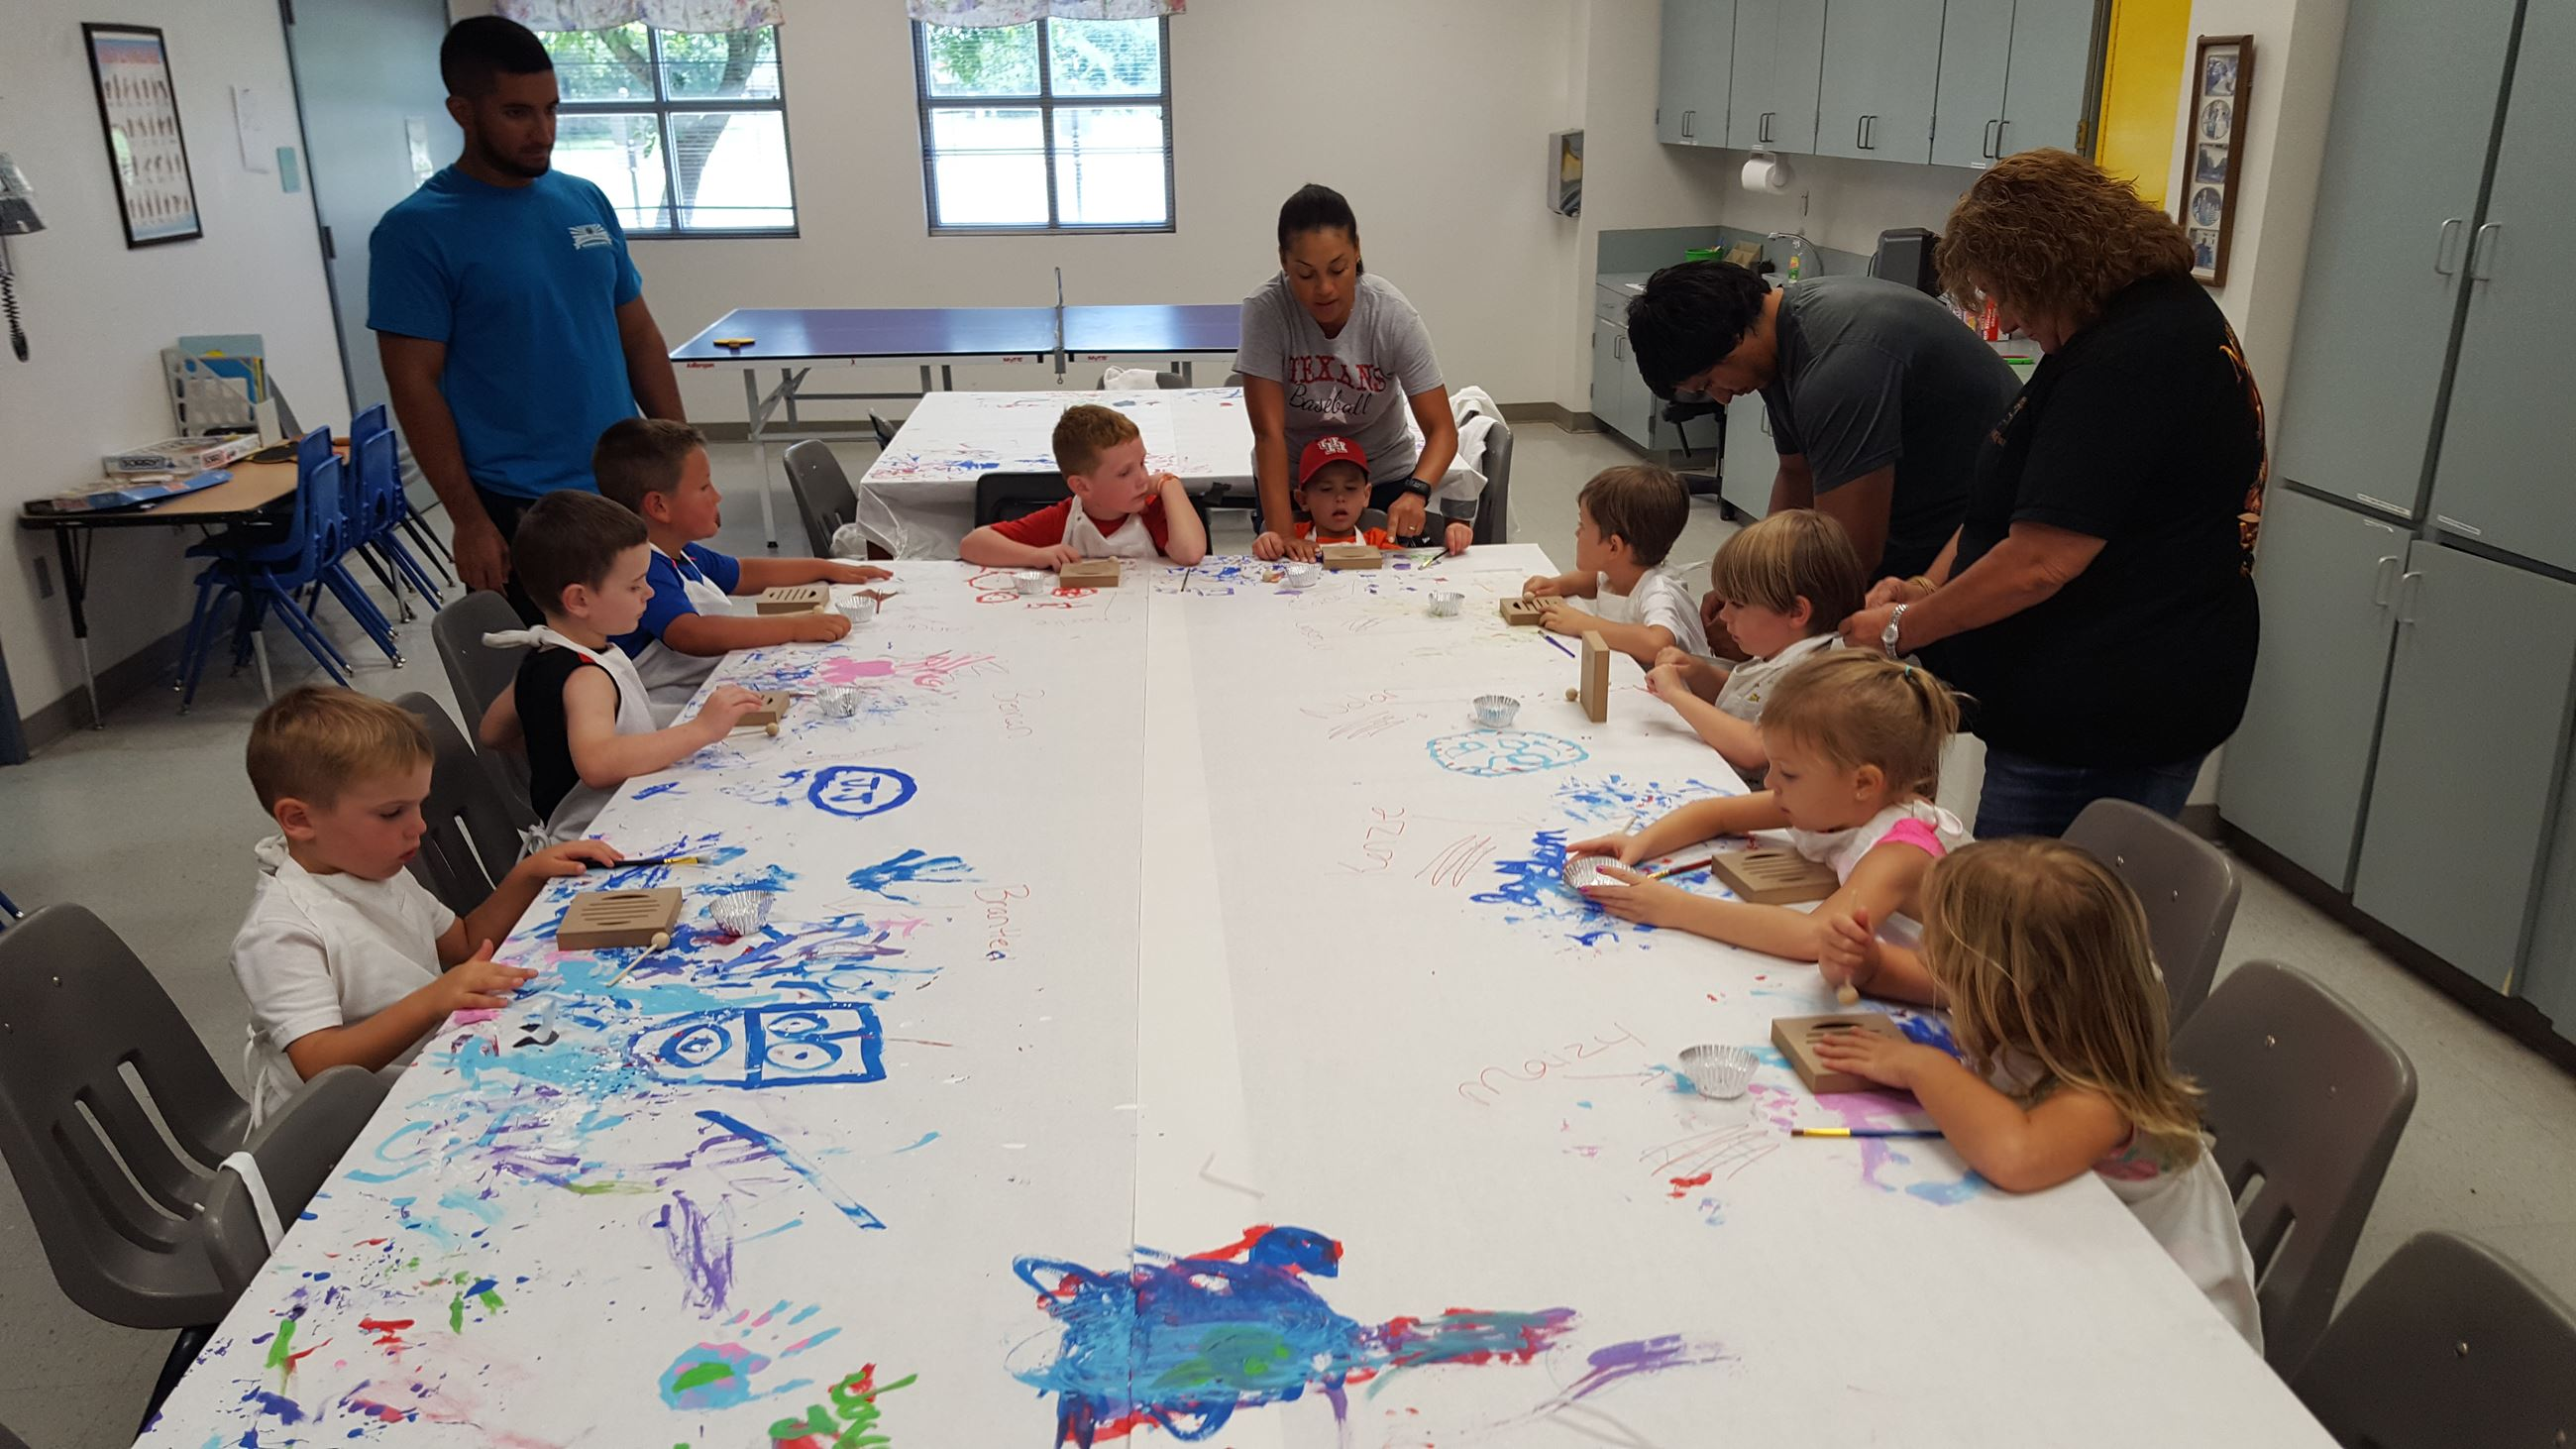 Kids painting a table